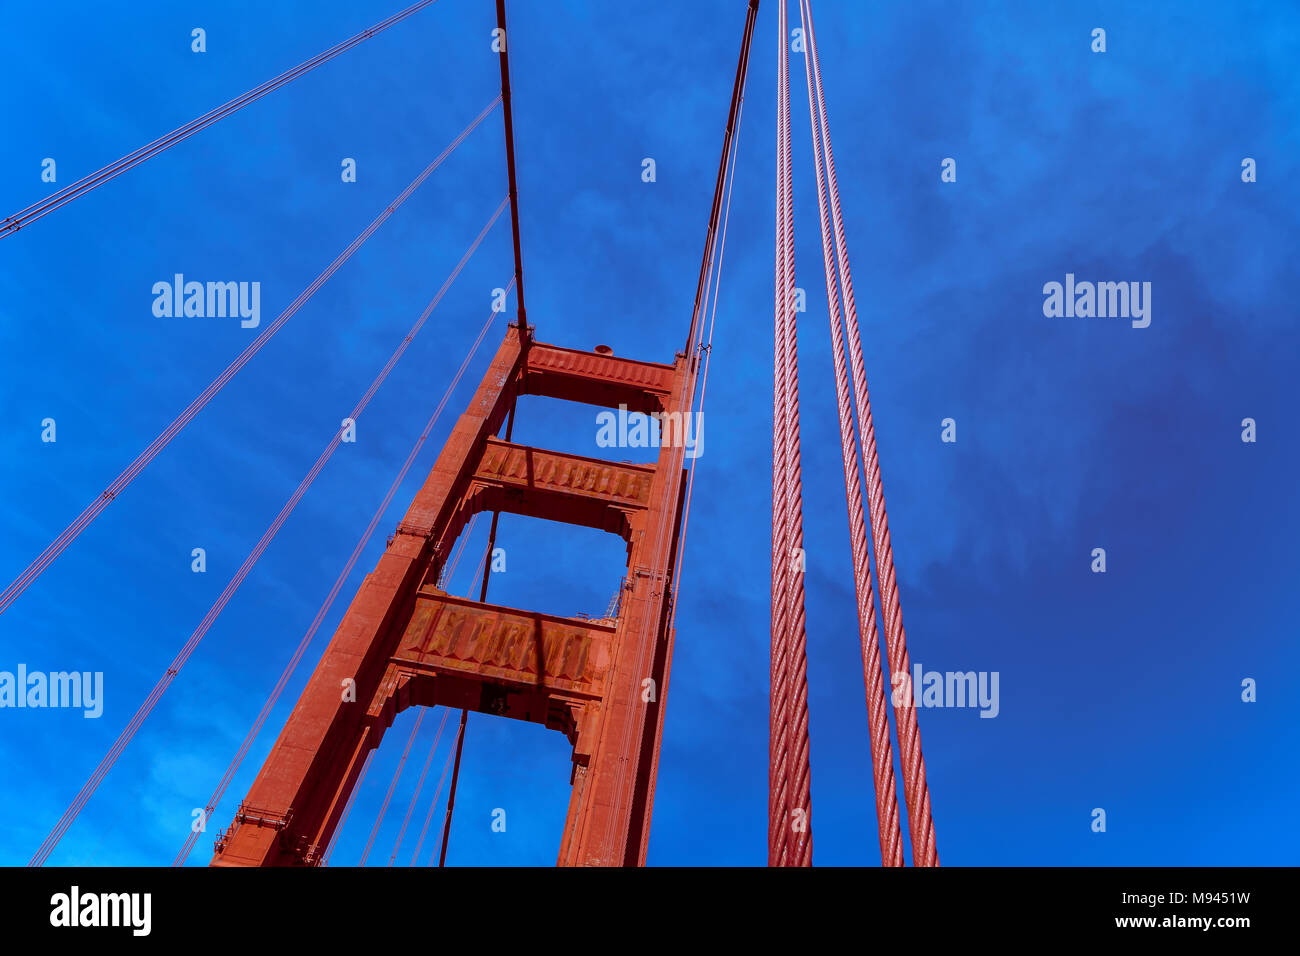 Structure of the Golden Gate Bridge Tower, San Francisco, California,United States. - Stock Image